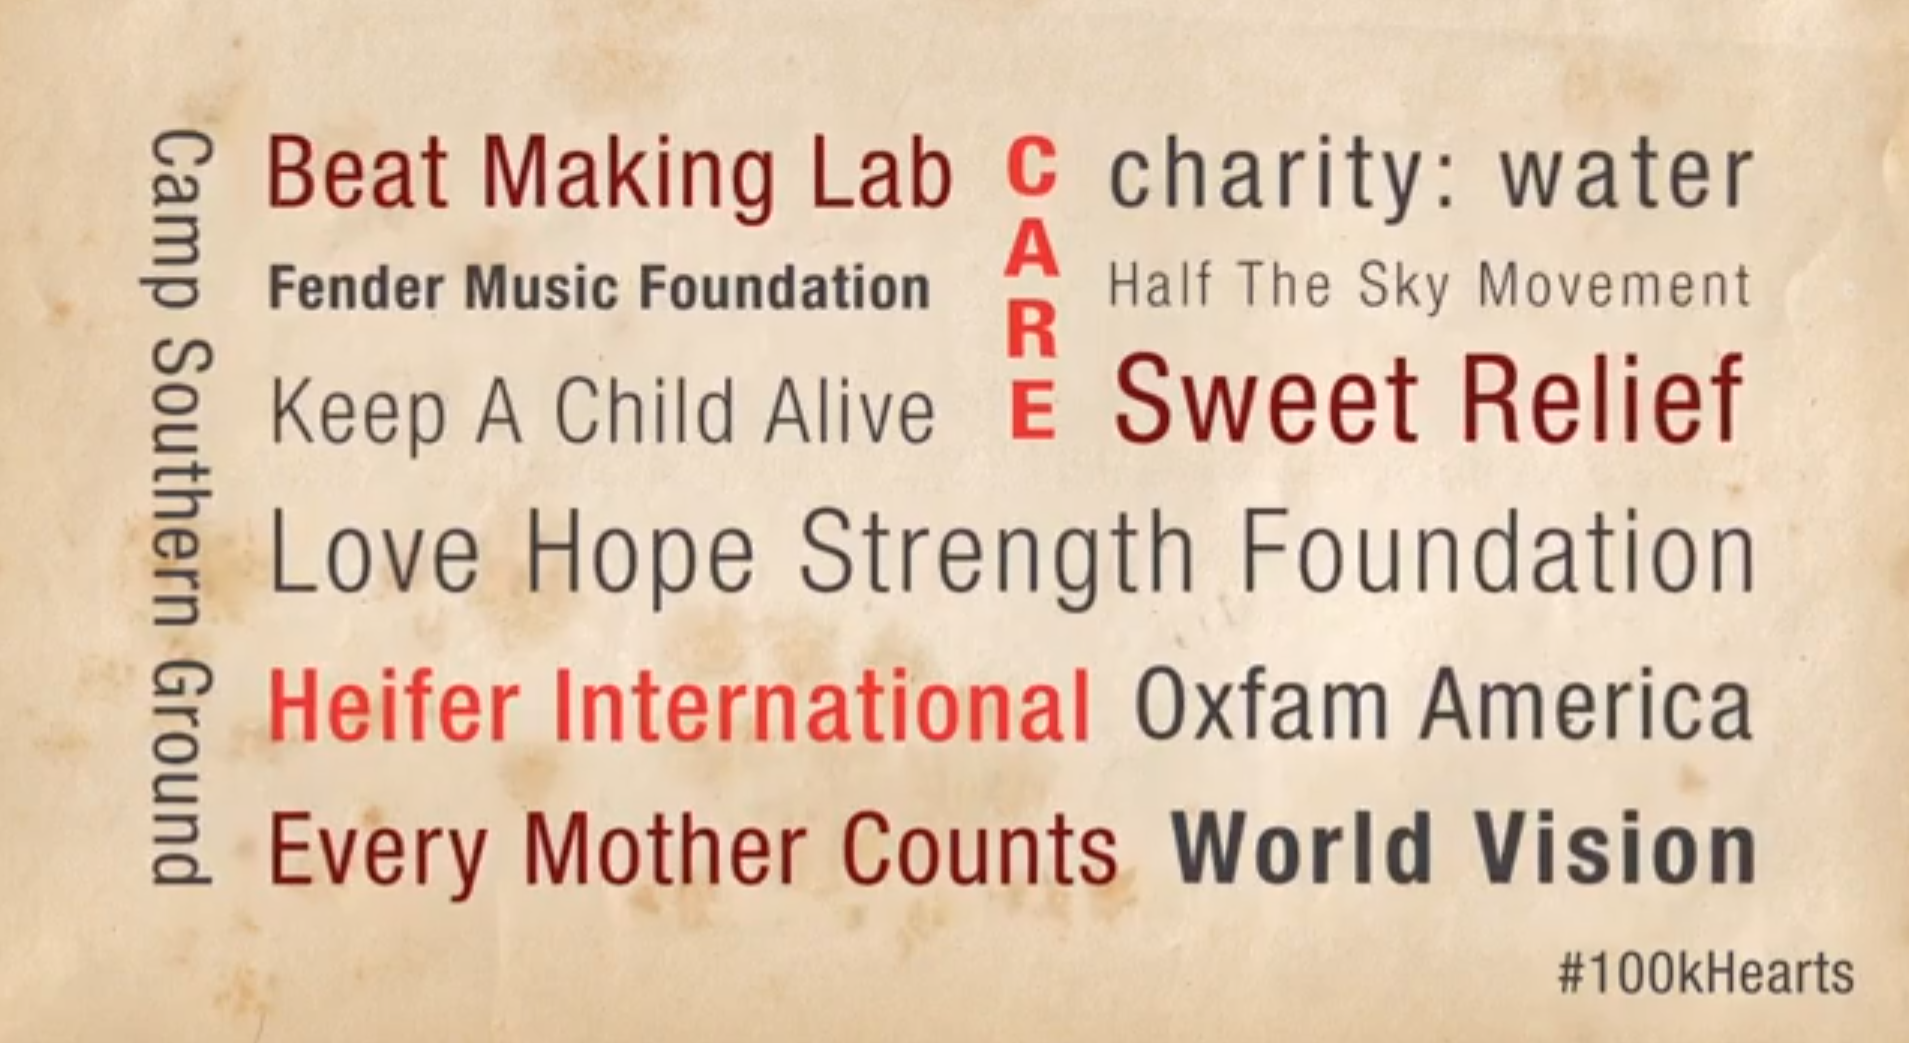 World Vision, Sweet Relief, Oxfam America, Love Hope Strength, Keep a Child Alive, Heifer International, Half the Sky Movement, Fender Music Foundation, Every Mother Counts, charity: water, CARE, Camp Southern Ground, Beat Making Lab